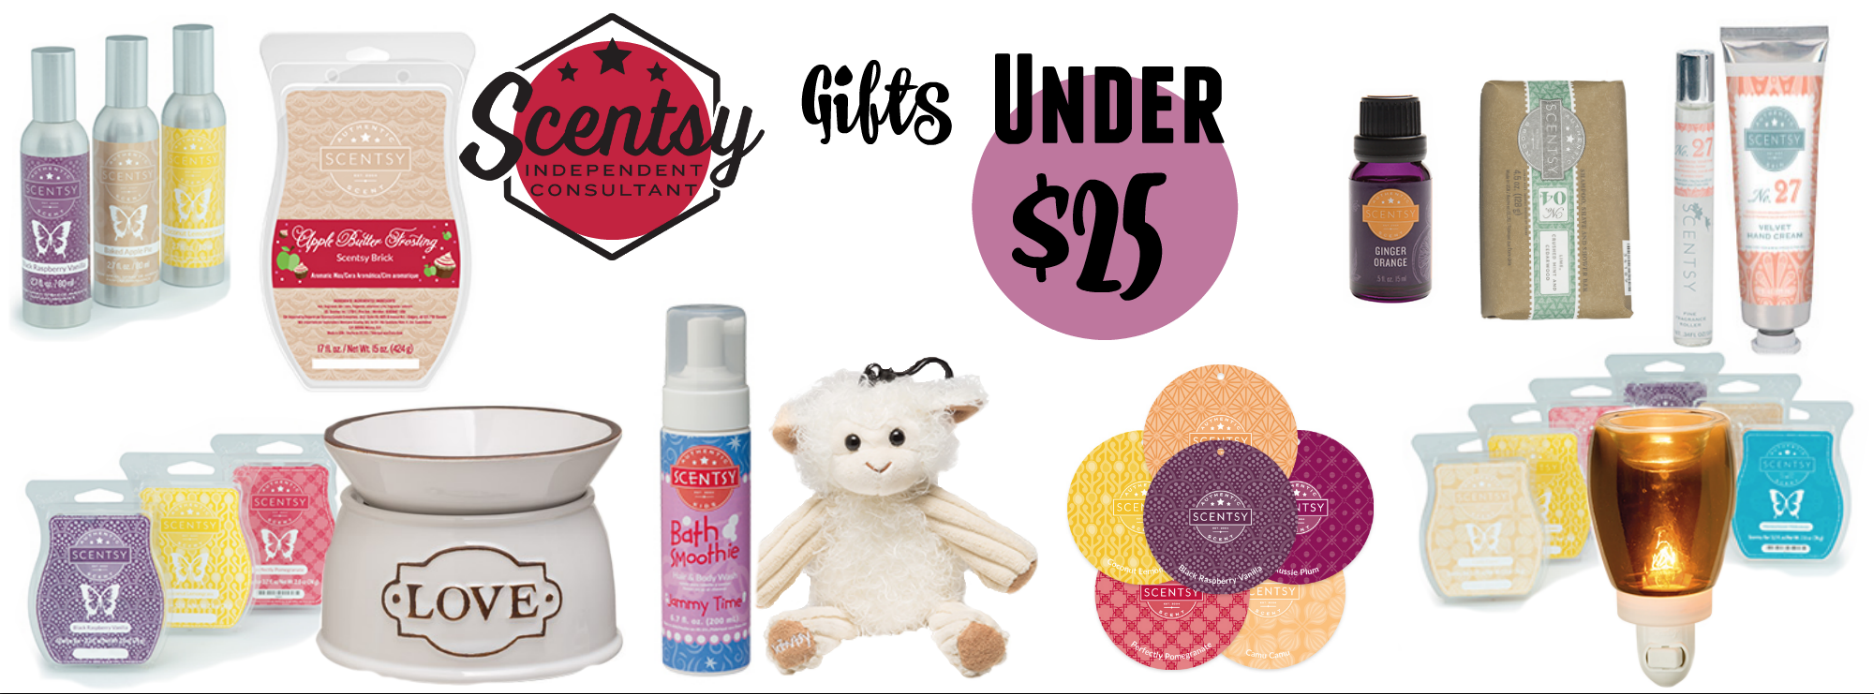 Gifts for $25 and under with Scentsy® products